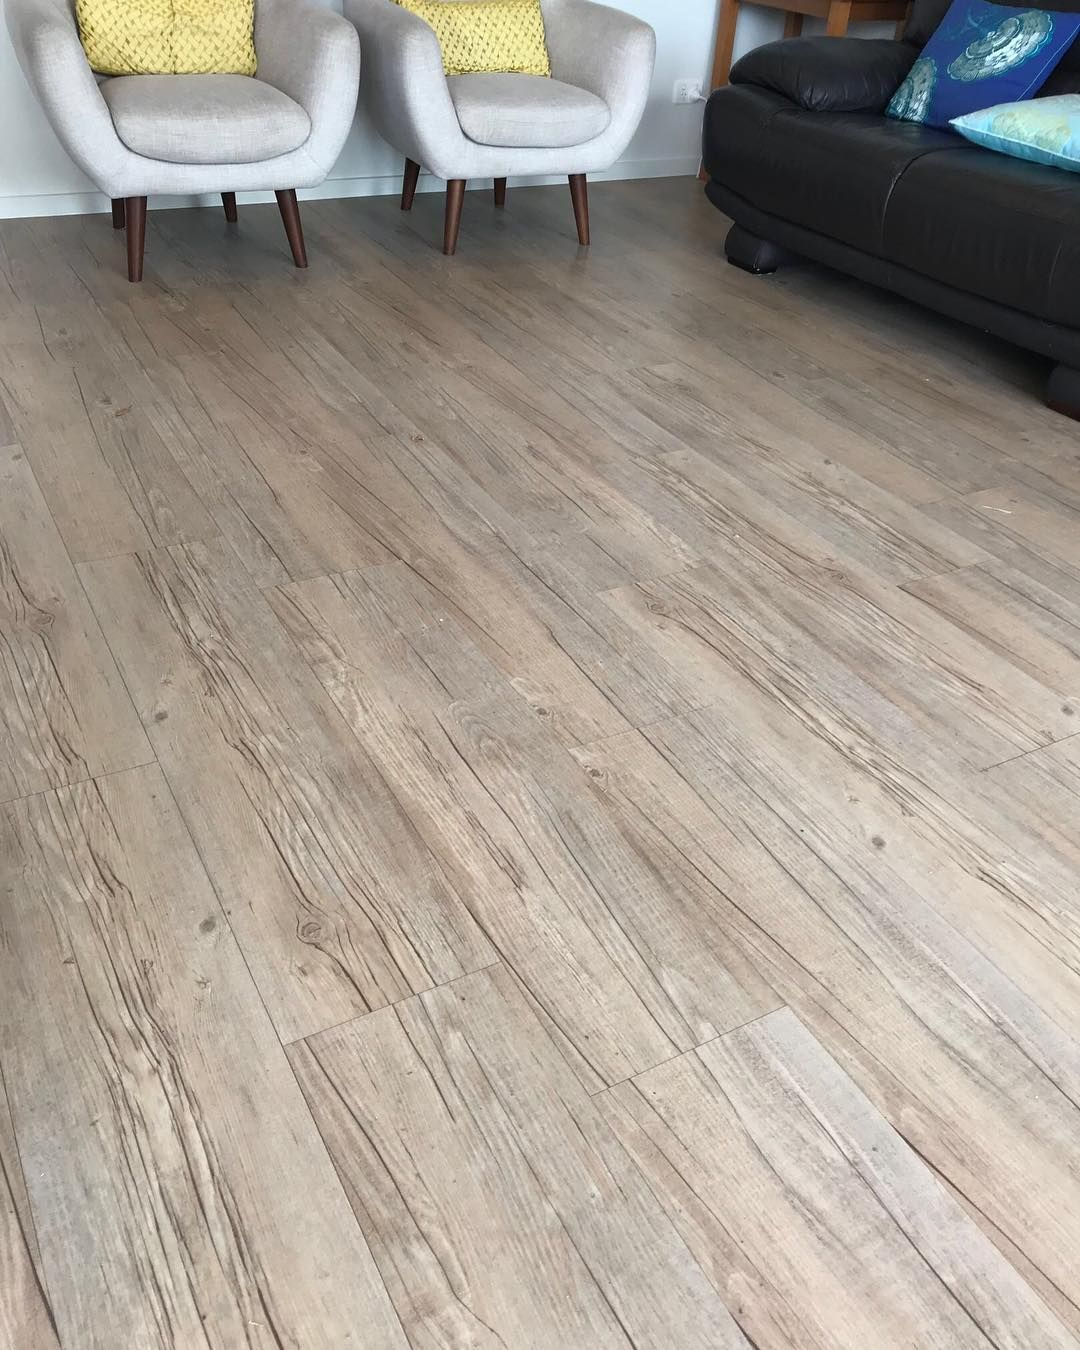 Karndean Loose Lay Country Oak Is Always A Good Choice Such